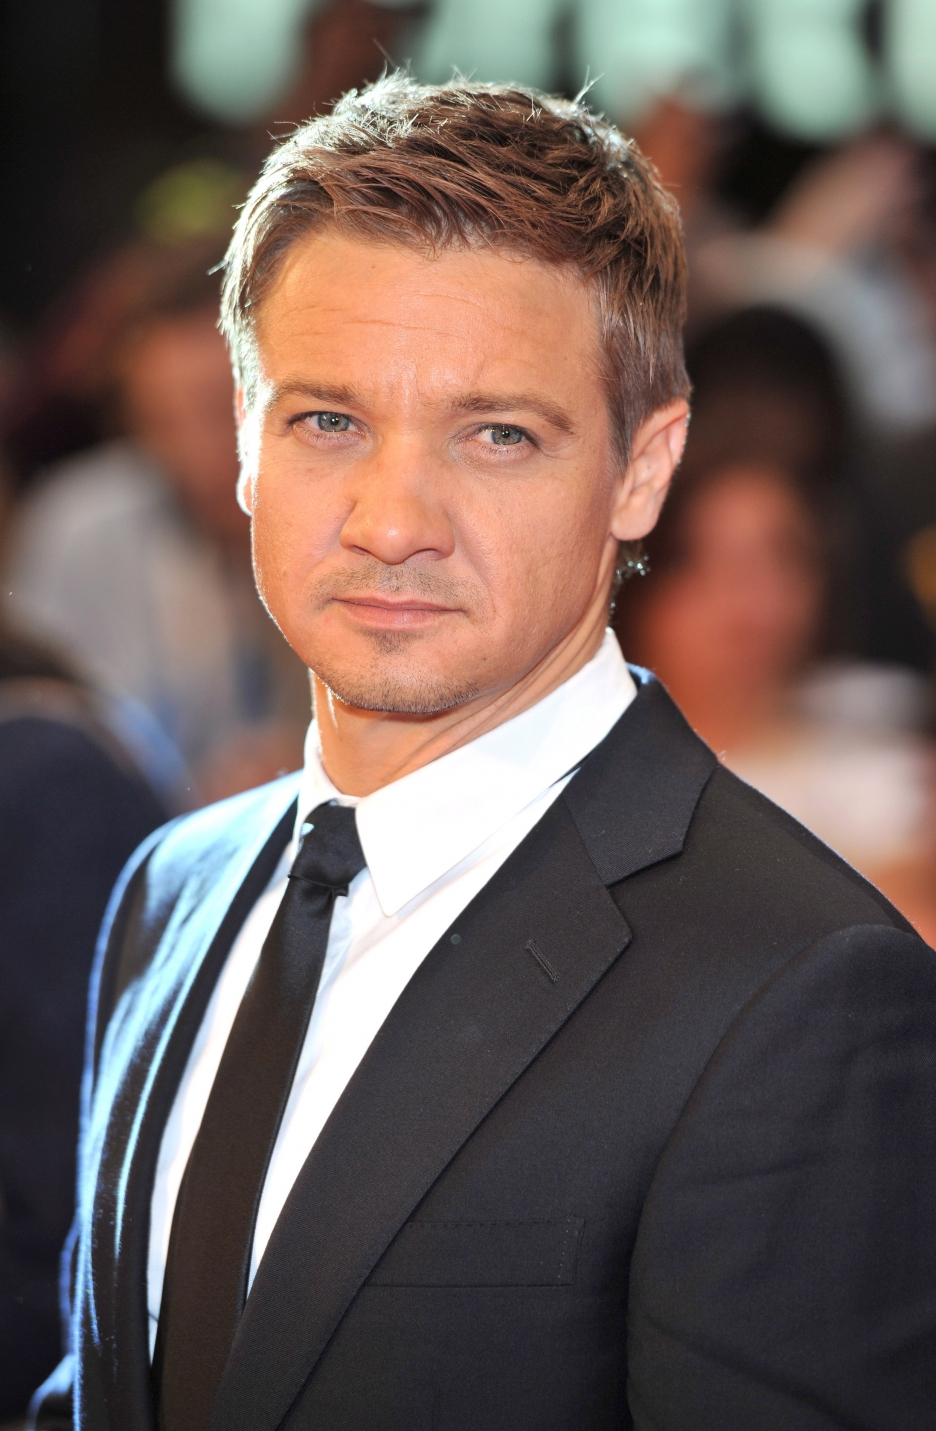 Jeremy Renner accused of 'bullying' ex, Sonni Pacheco